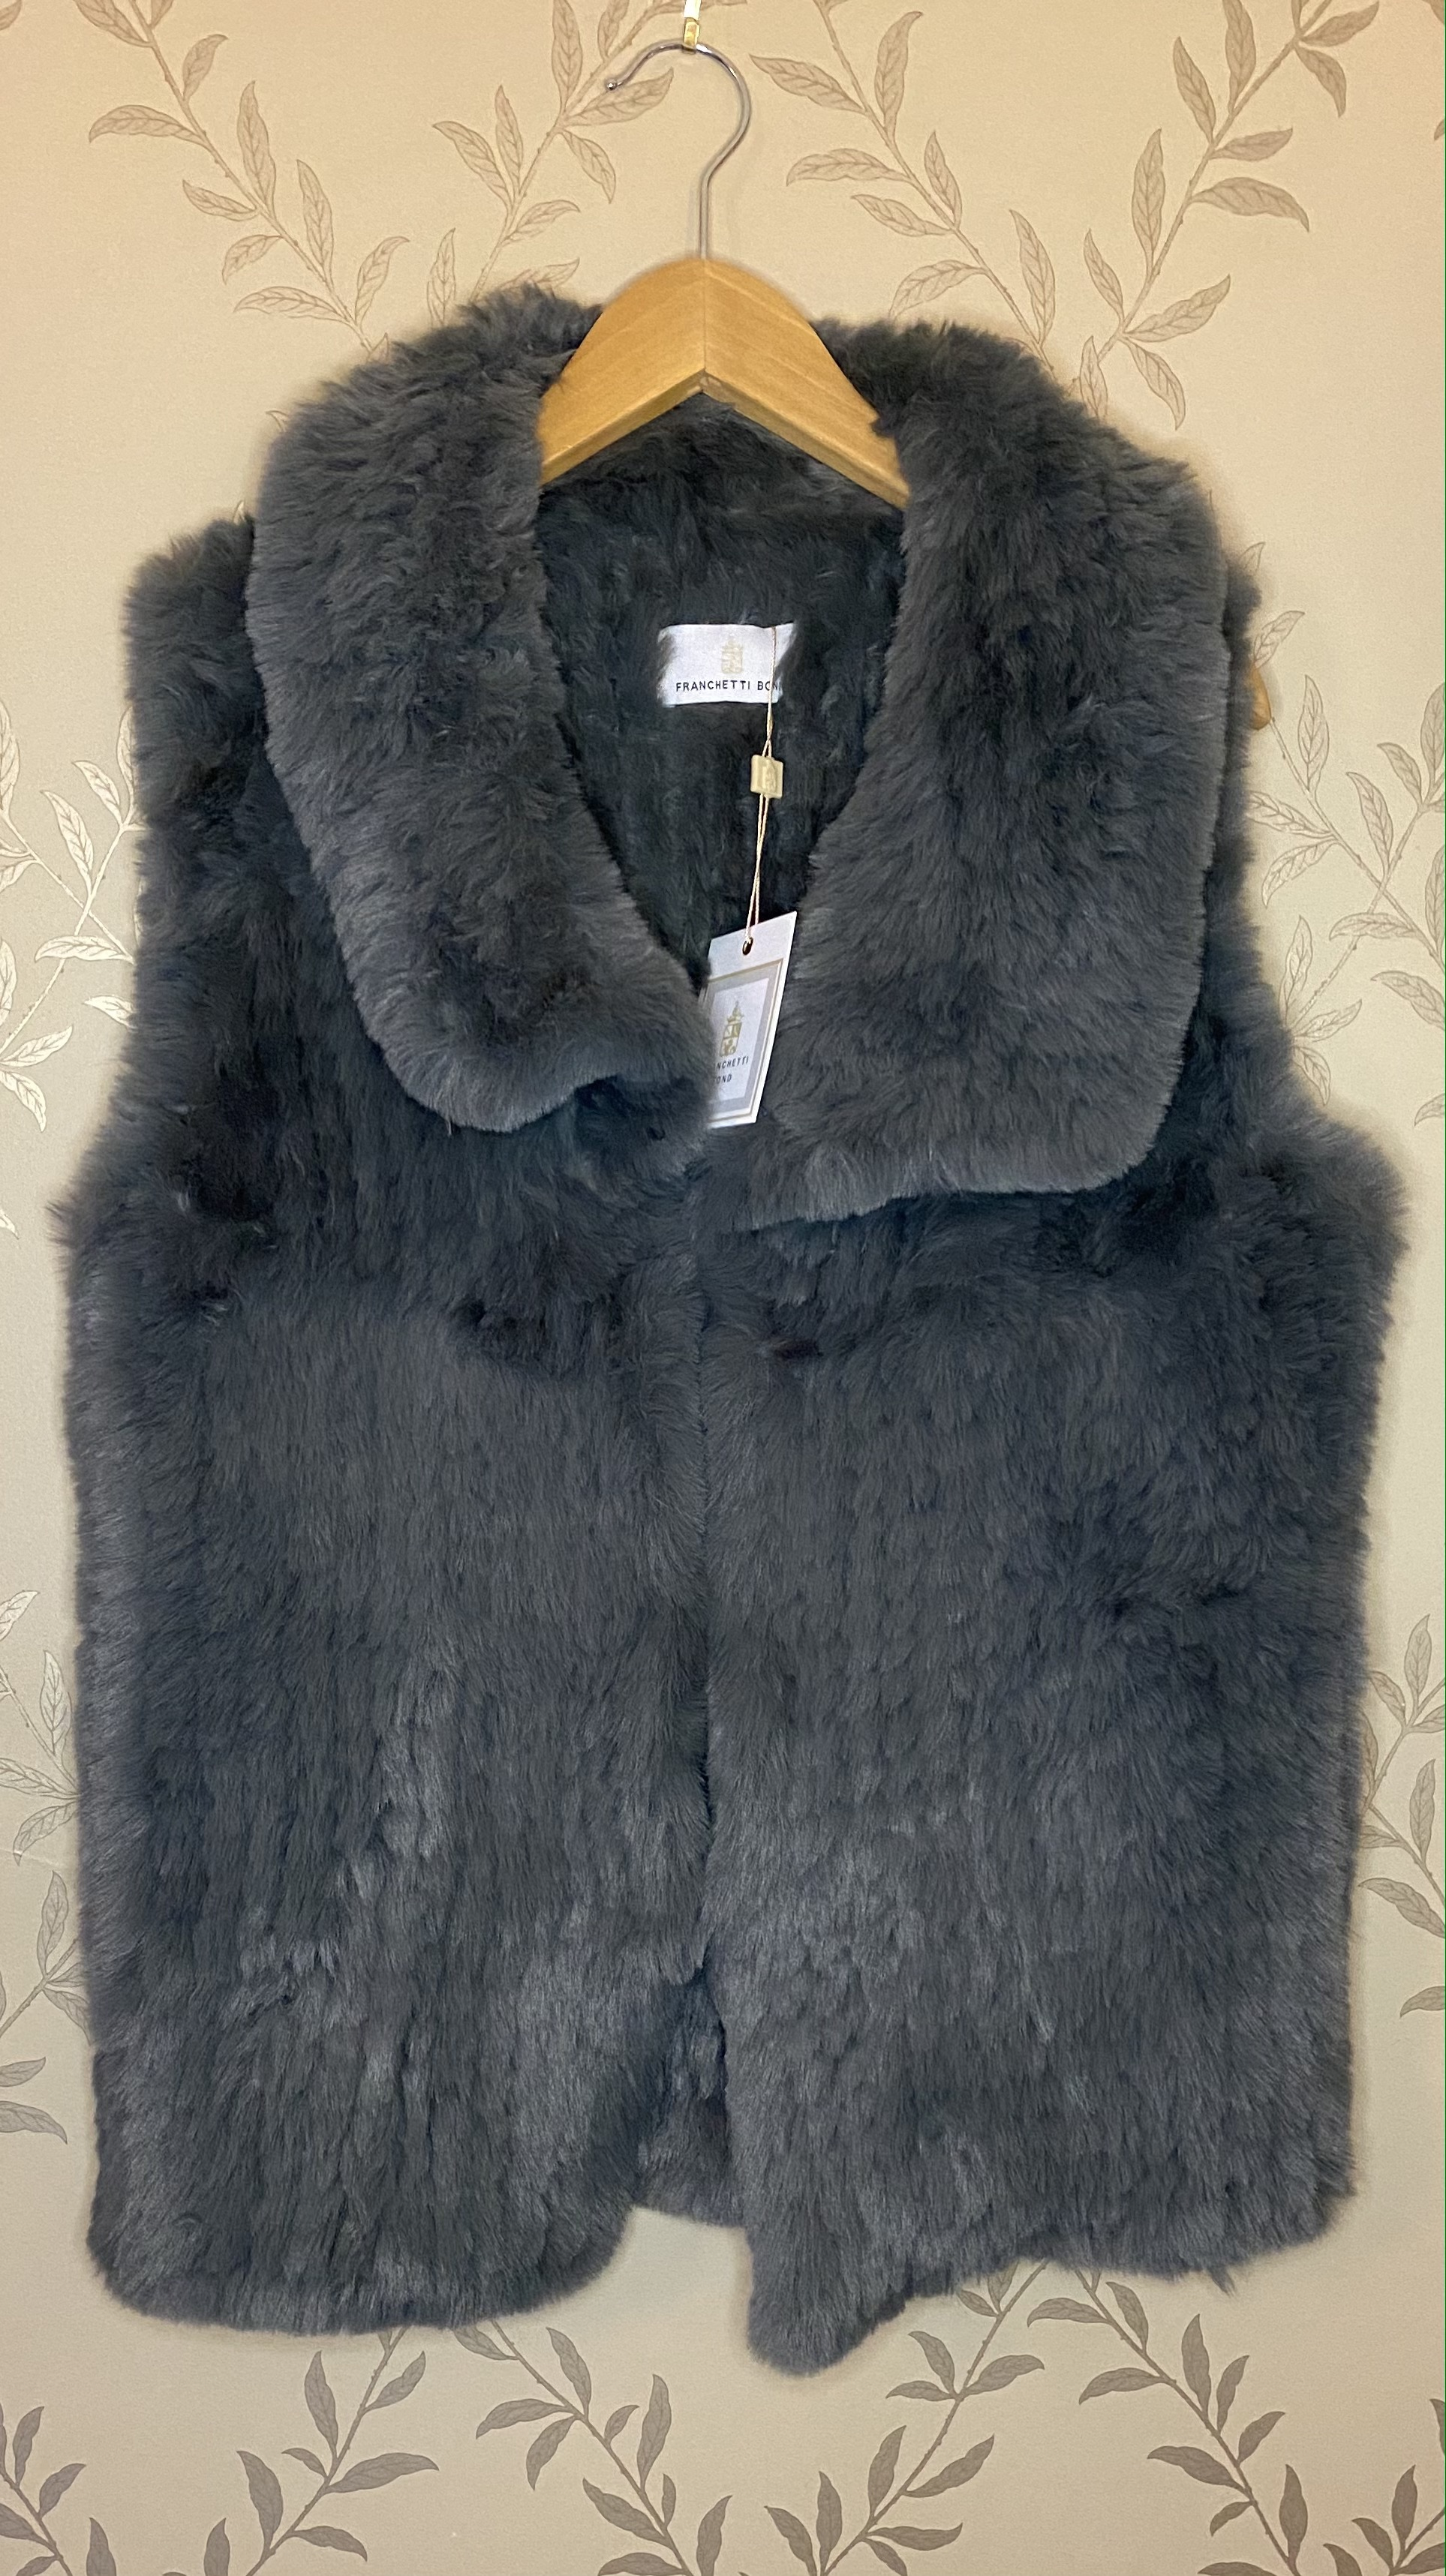 Franchetti Bond faux fur gilets - Available in 4 Designs